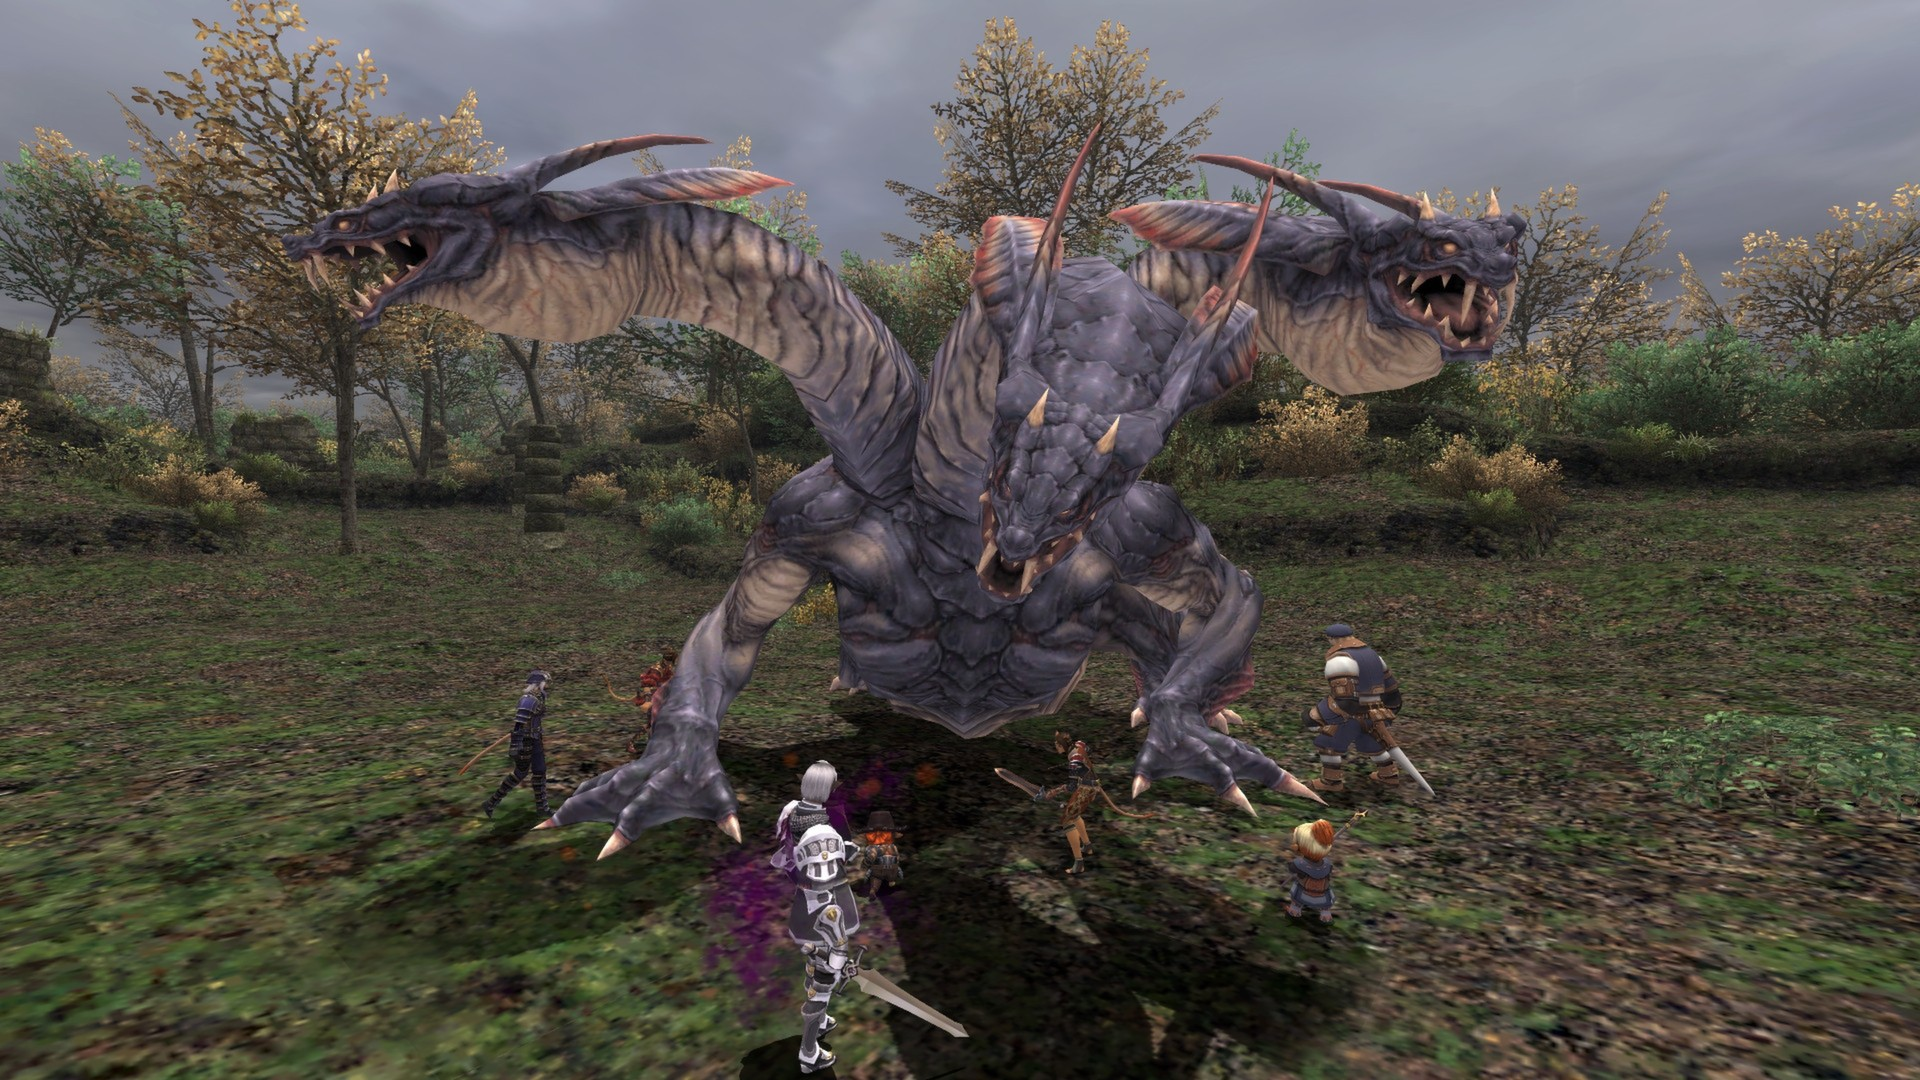 final fantasy xi online free to play